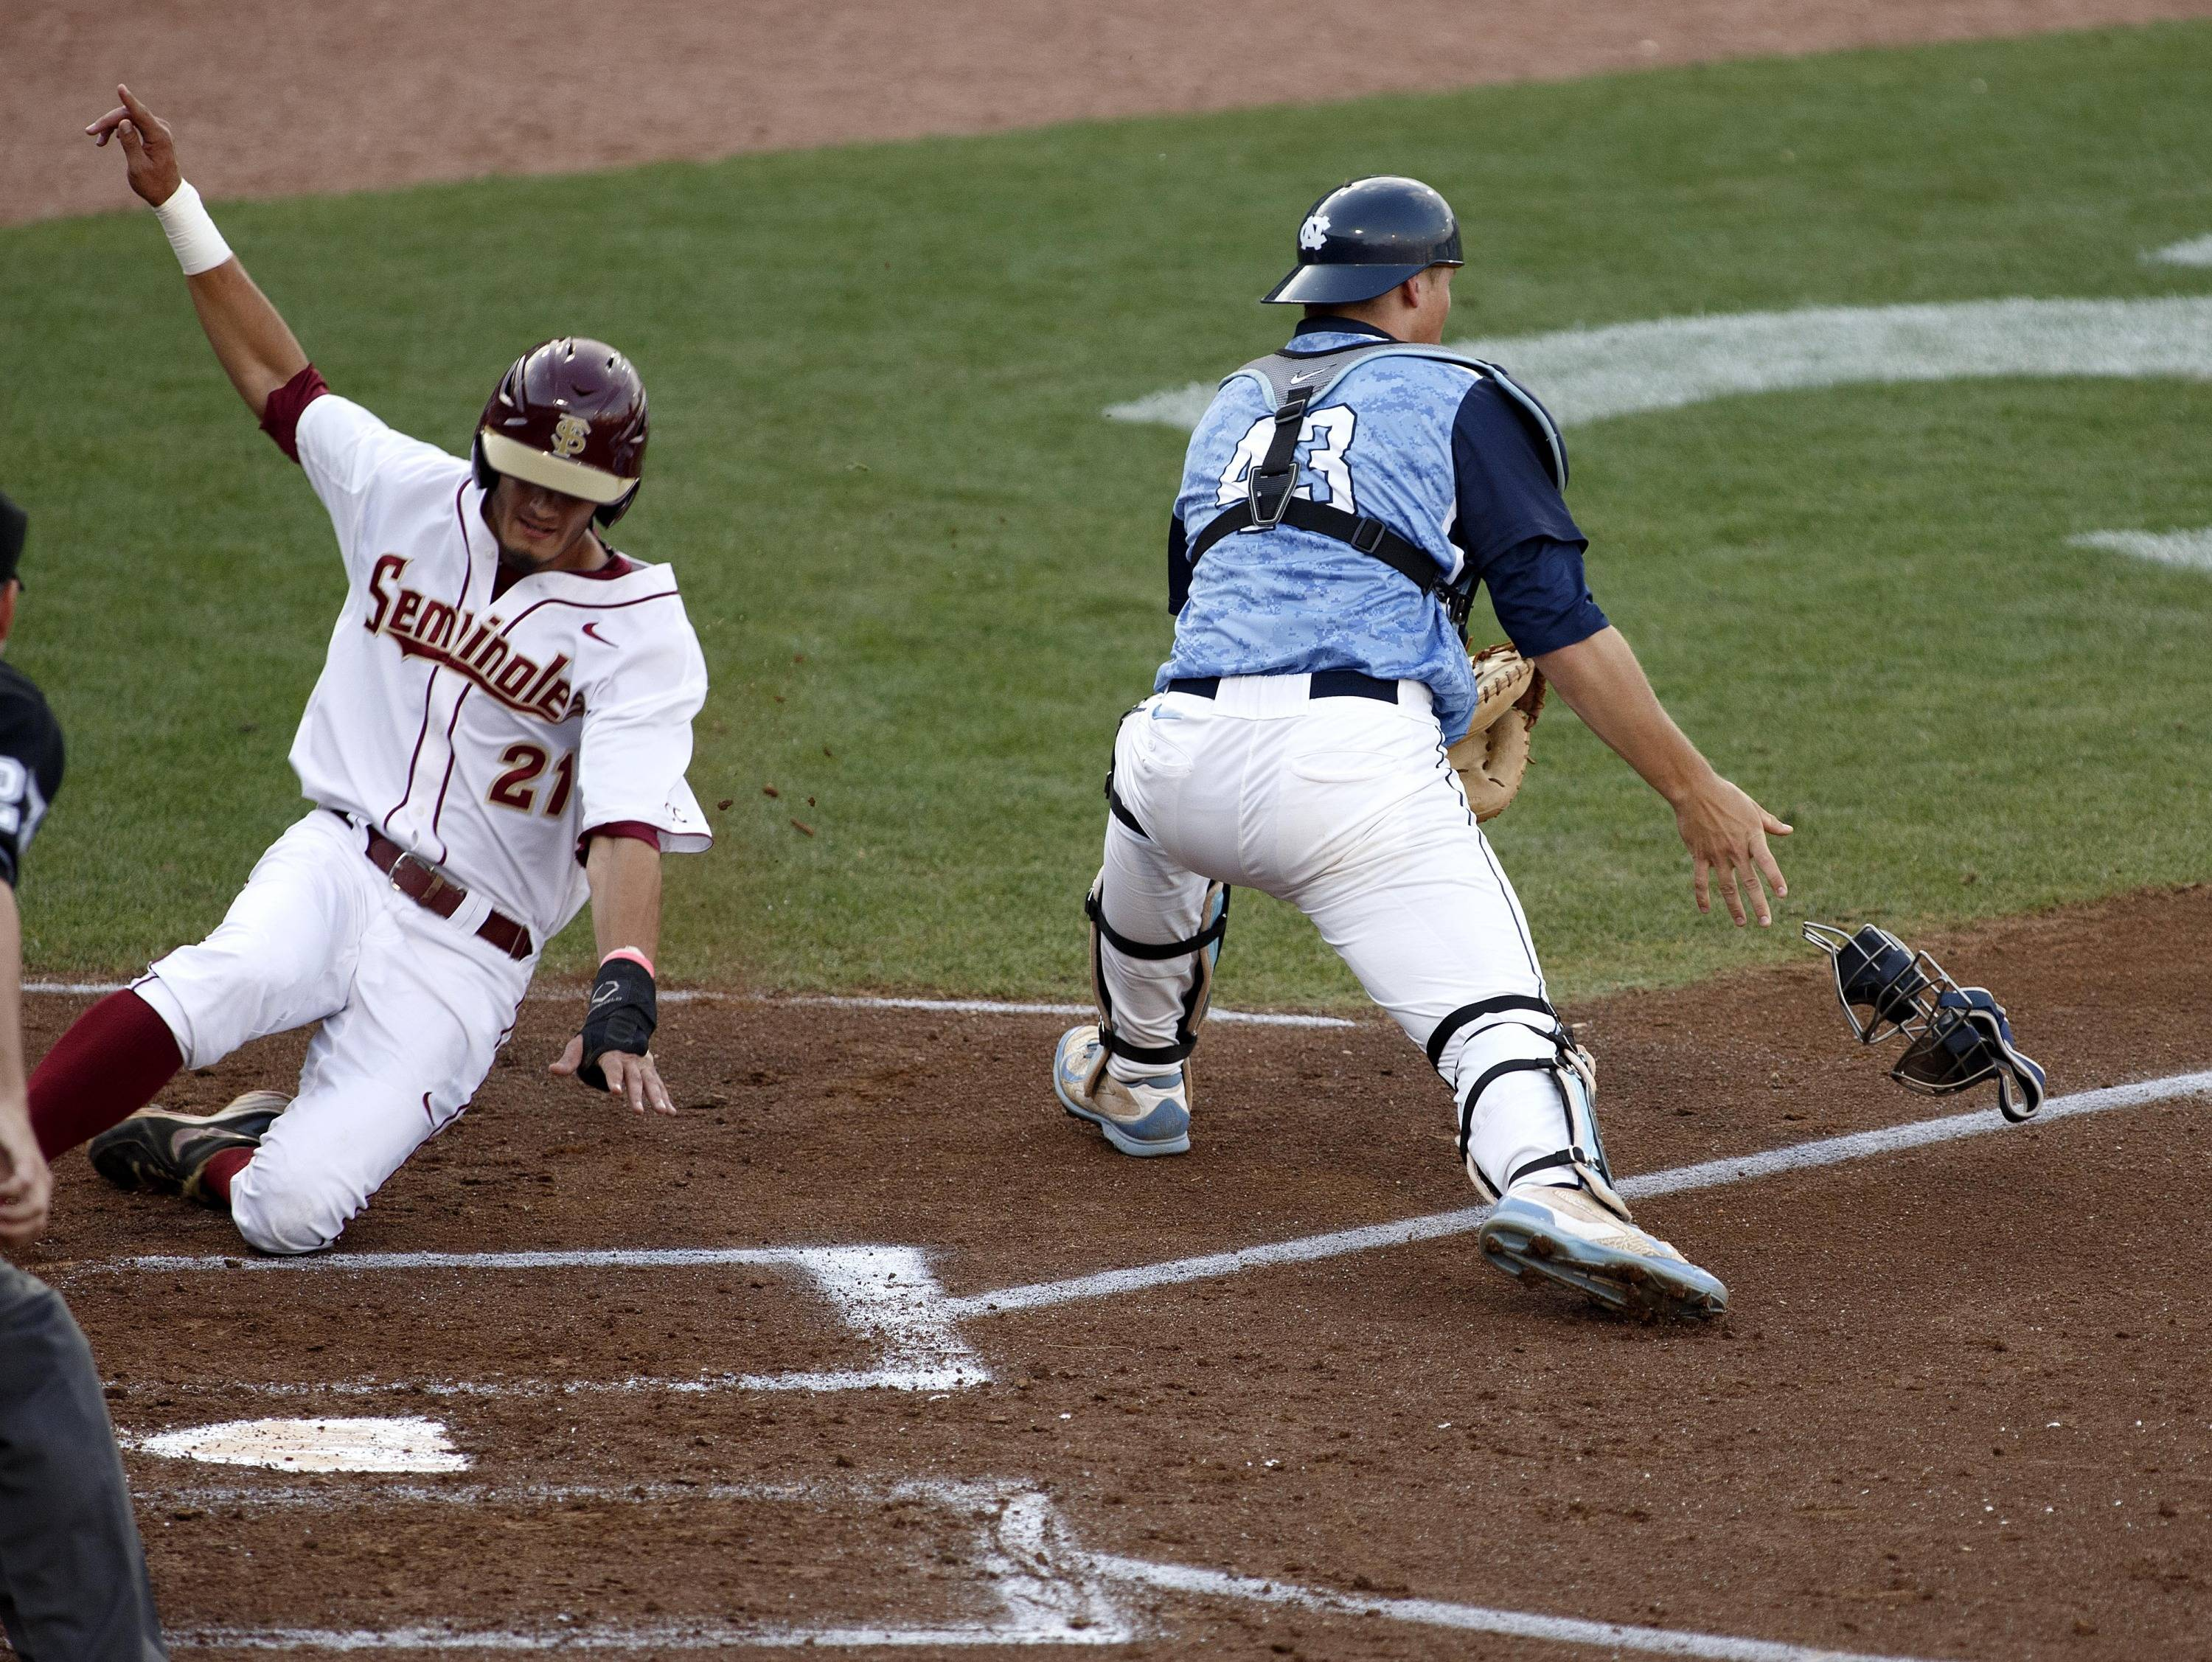 Florida State infielder Ben DeLuzio is safe as North Carolina catcher Korey Dunbar fields the throw.